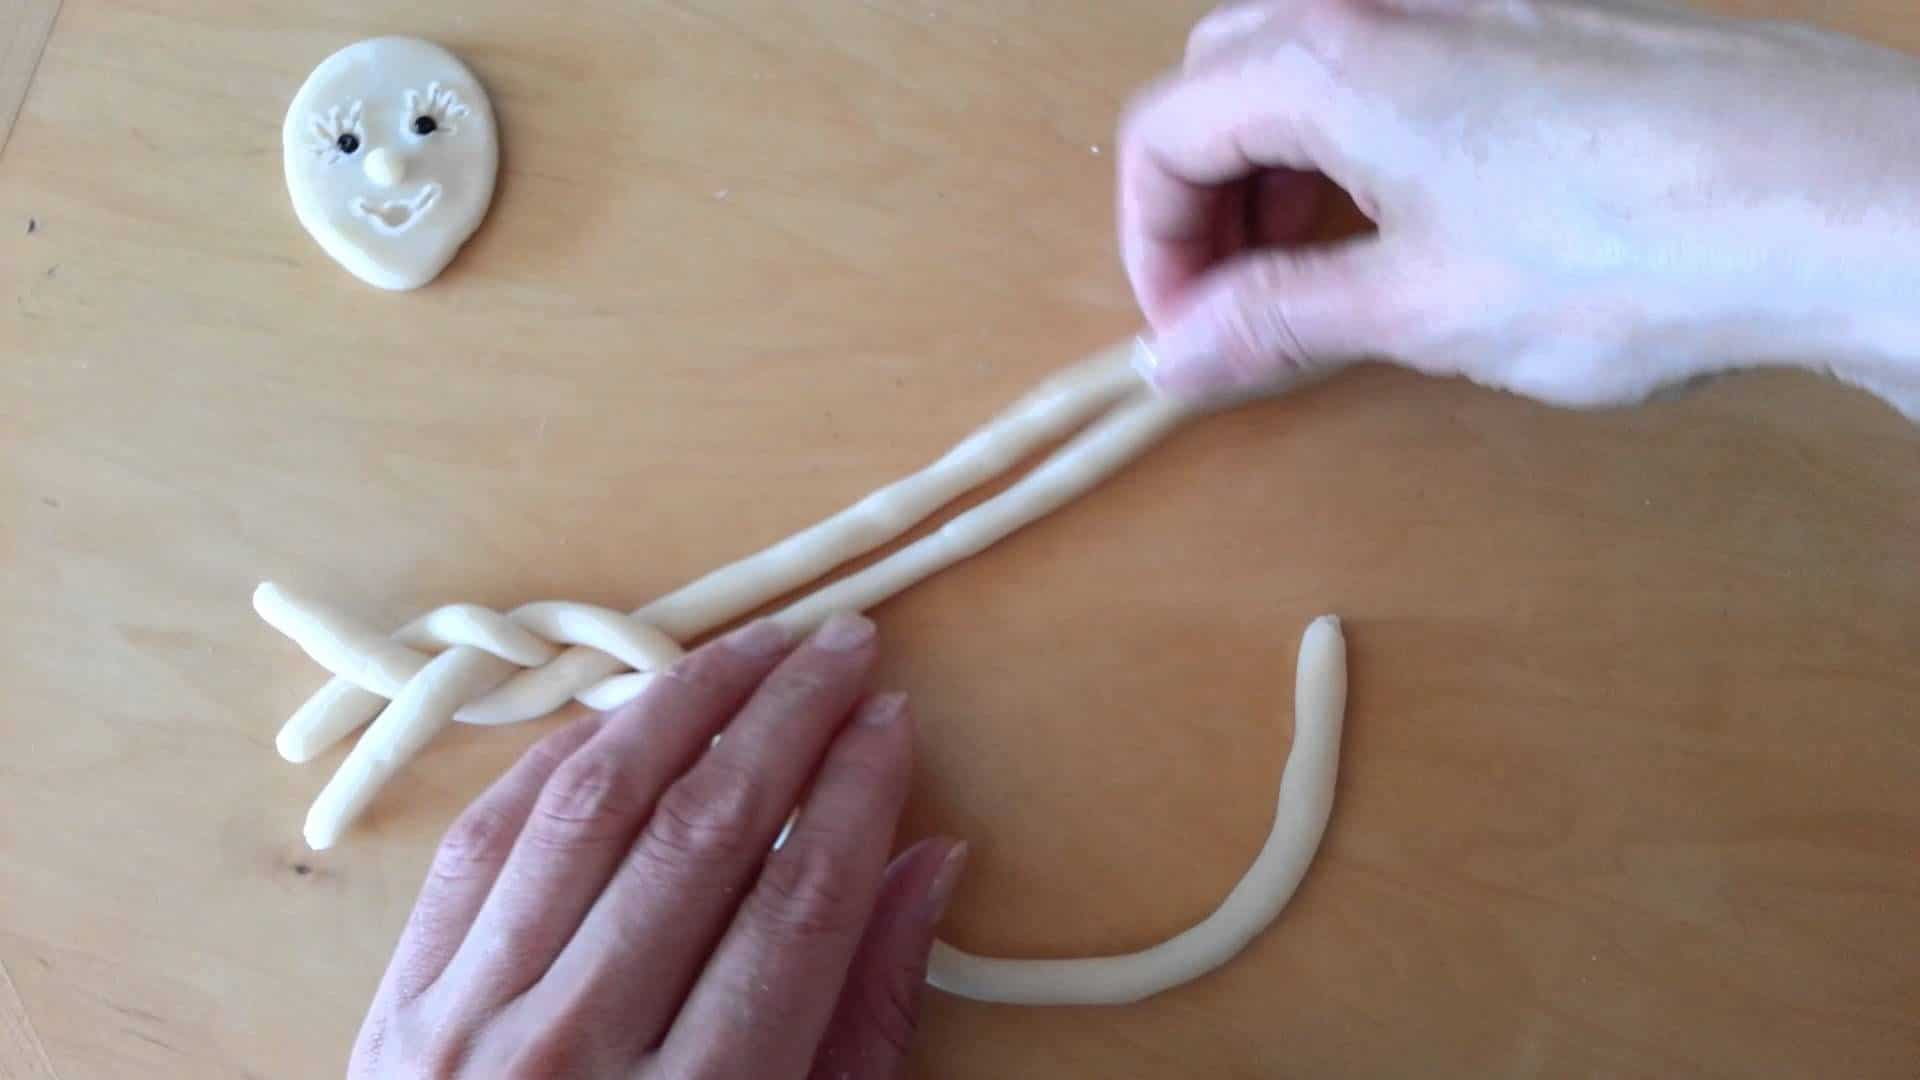 Hands mold salt dough into a braid on a table